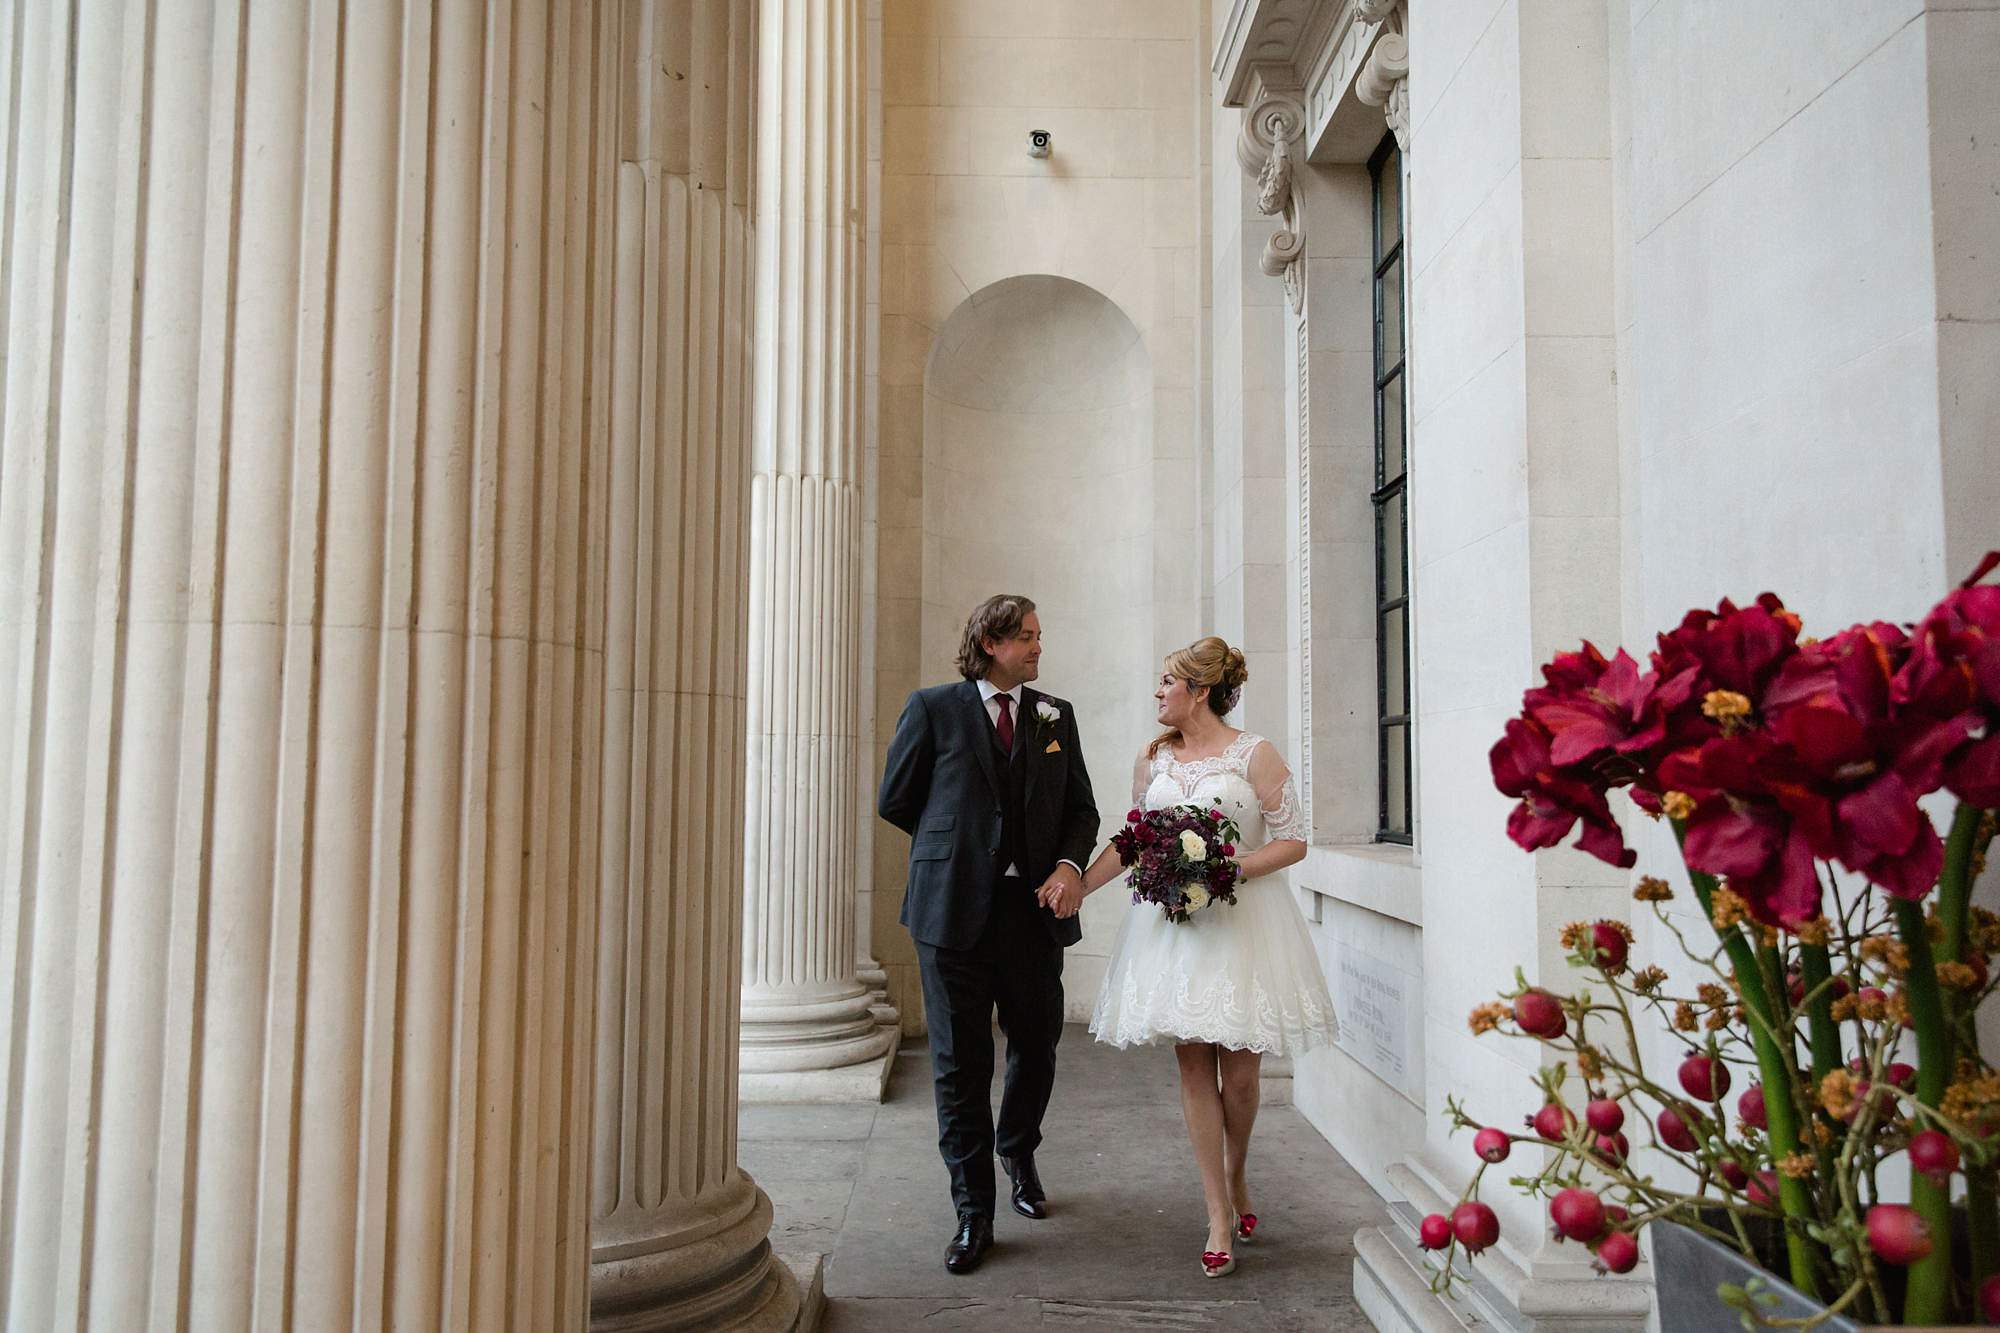 Old Marylebone Town Hall wedding photography bride and groom walking together